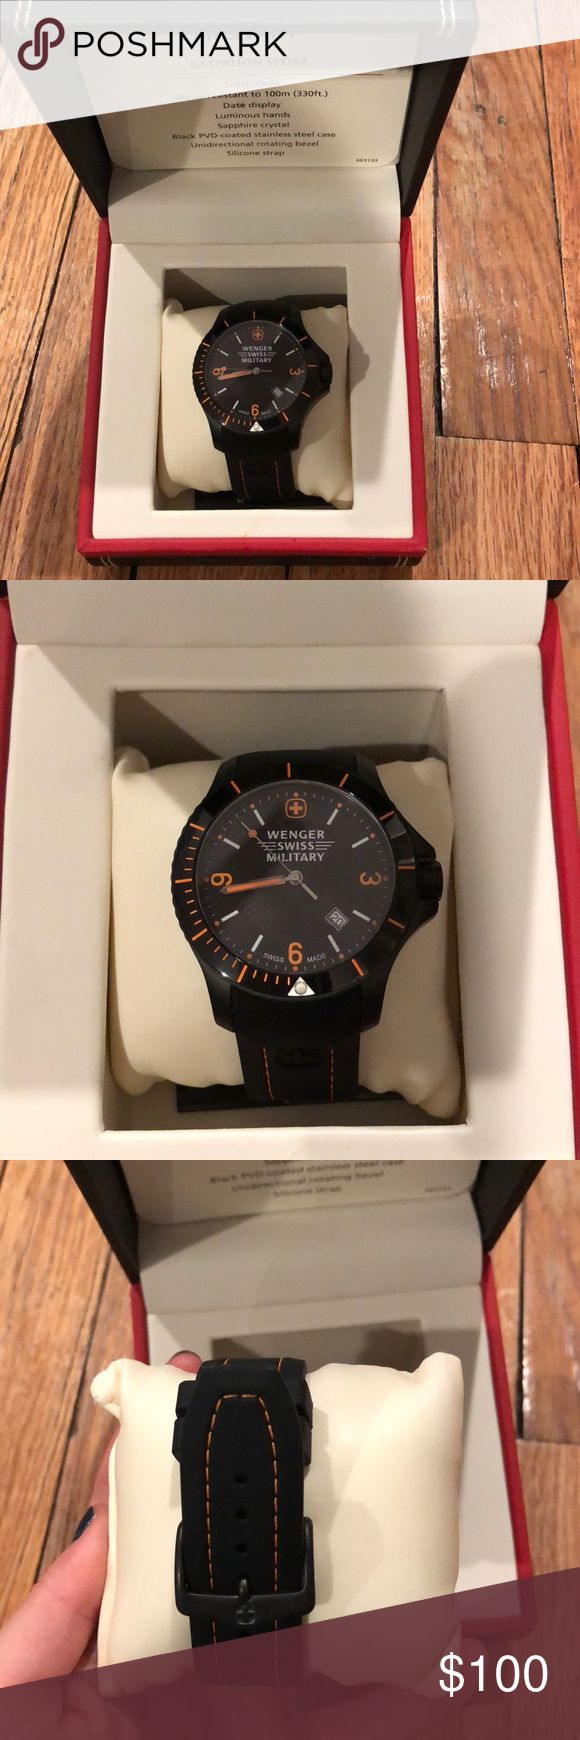 Wenger Swiss military watch Brand new black and orange Swiss watch. Comes with original box and care sheets. Works perfectly. Never been out of the box. Great gift for a brother husband freind or boyfriend. Price is negotiable. Accessories Jewelry